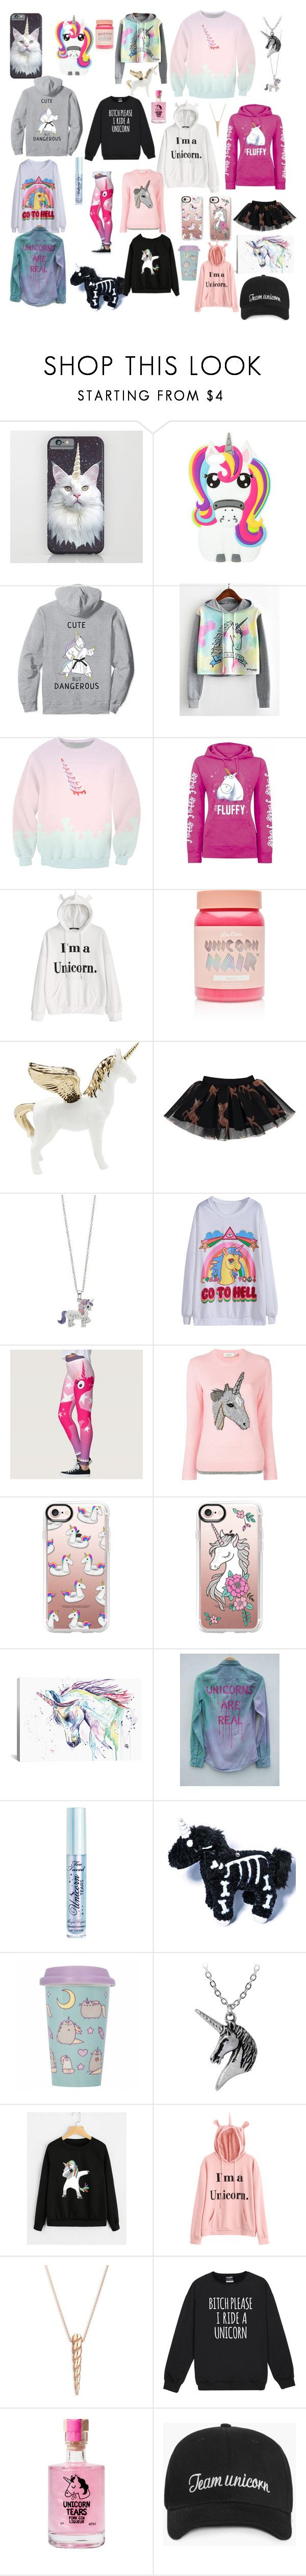 """""""Unicorn Pack 2"""" by harrystyleslove02 ❤ liked on Polyvore featuring WithChic, Lime Crime, Caroline Bosmans, Coach, Casetify, iCanvas, Too Faced Cosmetics, Pusheen and Ginette NY"""